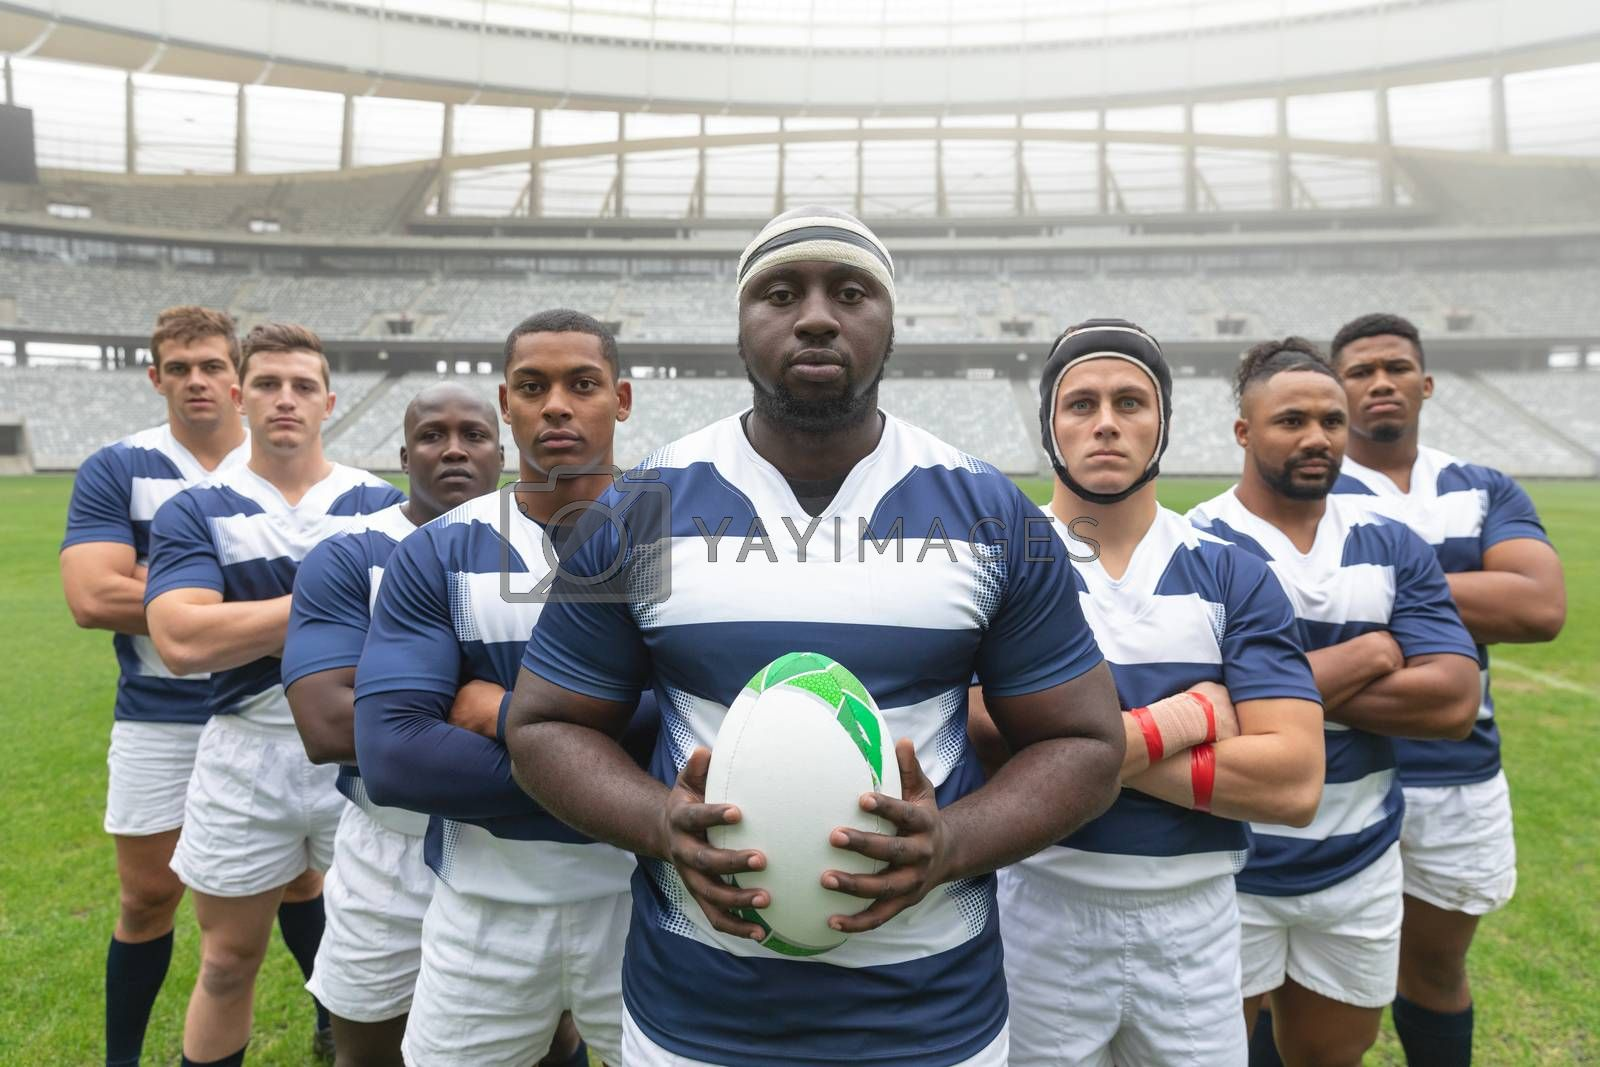 Group of diverse male rugby players standing together with rugby ball in stadium by Wavebreakmedia